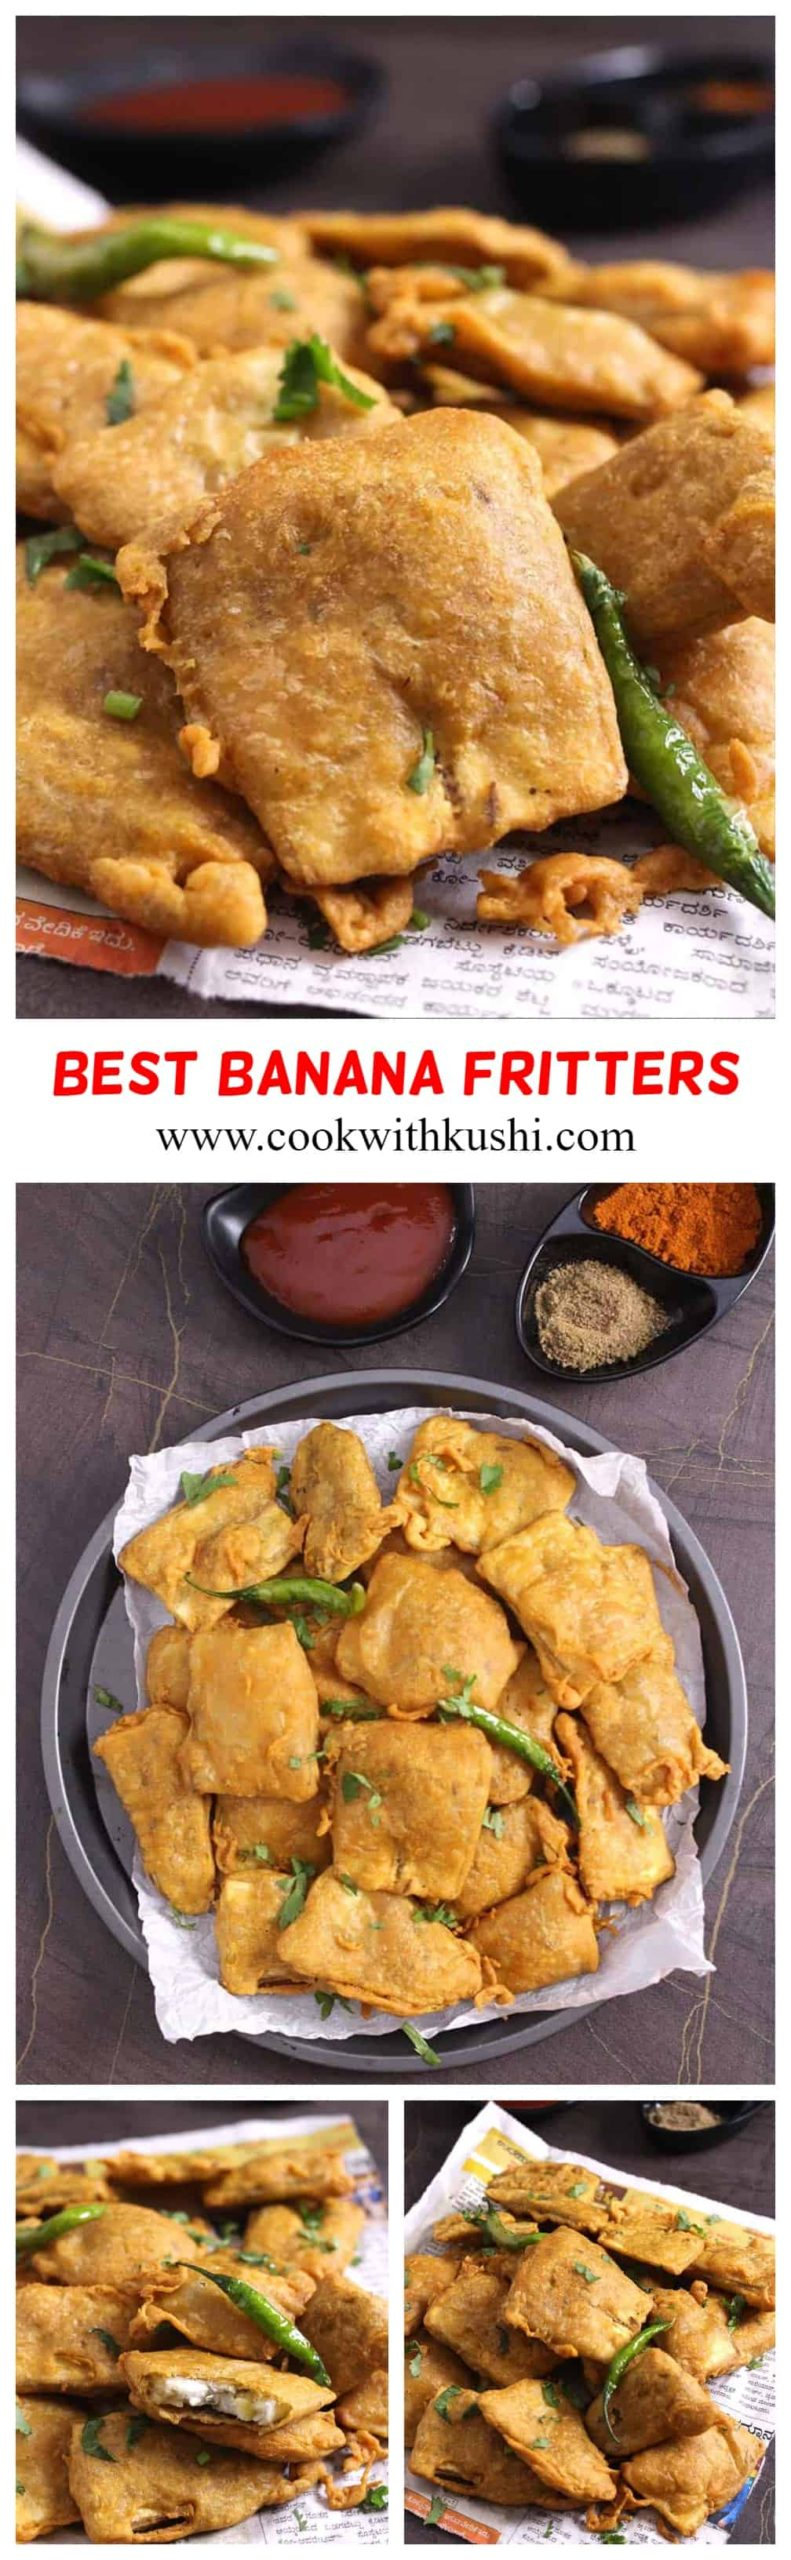 Banana Pakora is a easy to make, spiced and crisp Indian fritter that are addictive and so delicious that you just can't stop eating one. #pakora #pakoda #indianfood #indianrecipes #fritters